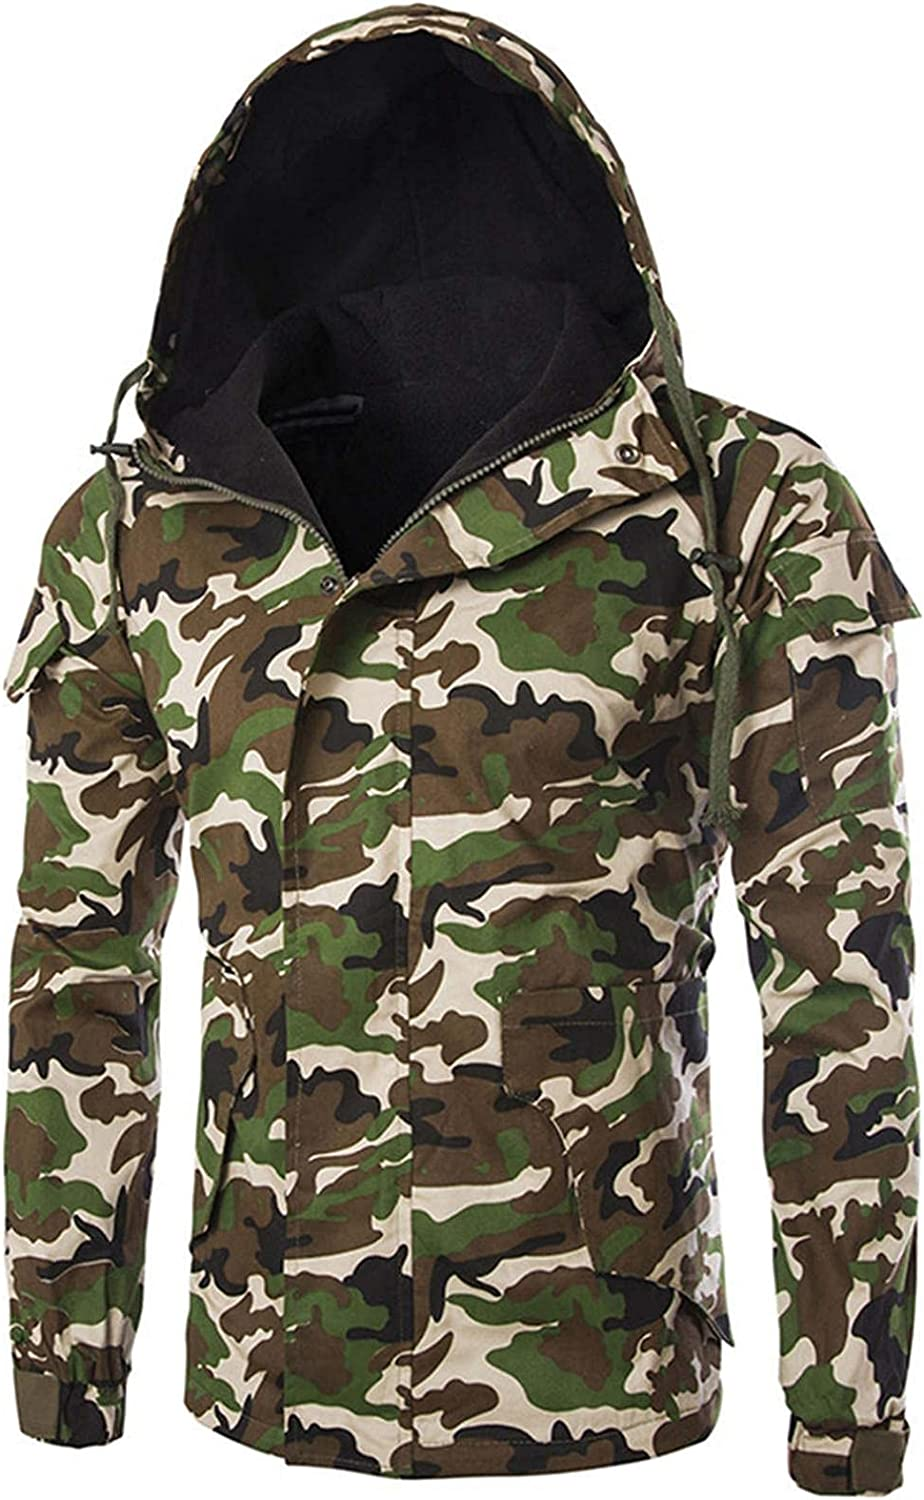 XUNFUN Men's Camo Hooded Down Jackets Thicken Warm Military Style Winter Coats Packable Puffer Jacket with Muti Pockets